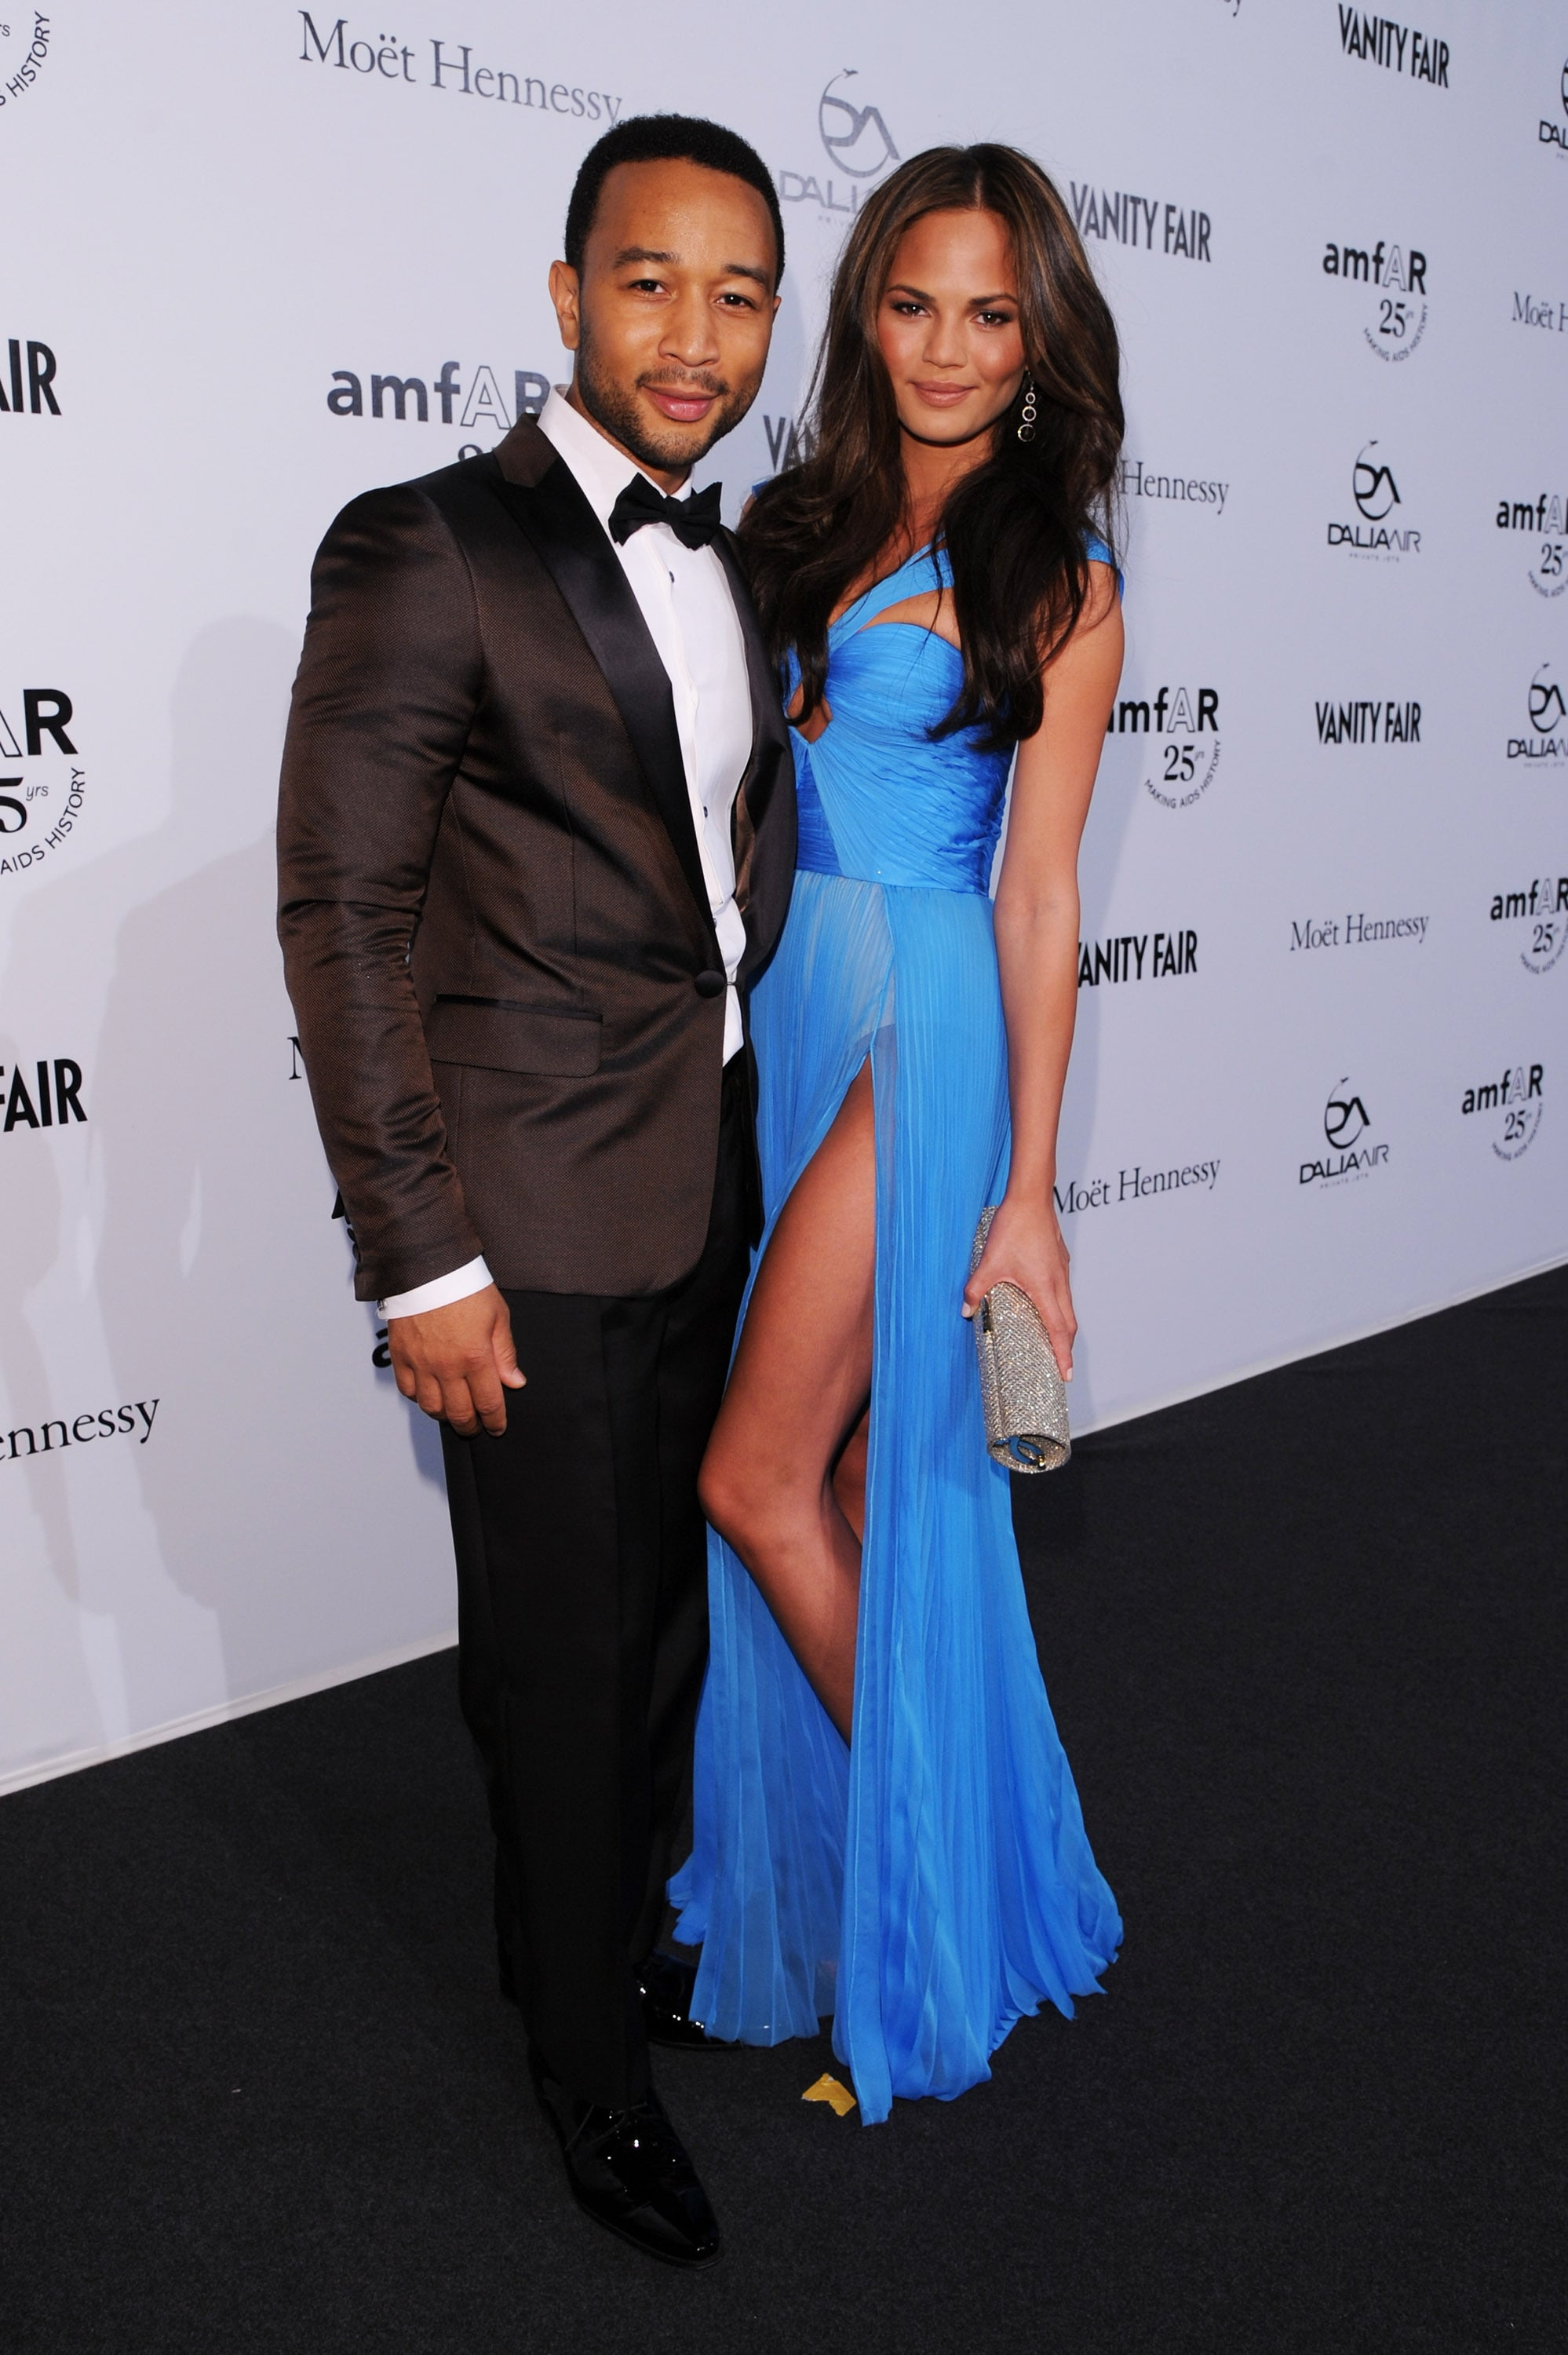 Chrissy Teigen and singer John Legend have been engaged since 2011, but they started dating in 2007. Teigen said in May 2013 that they plan to marry in the Fall.